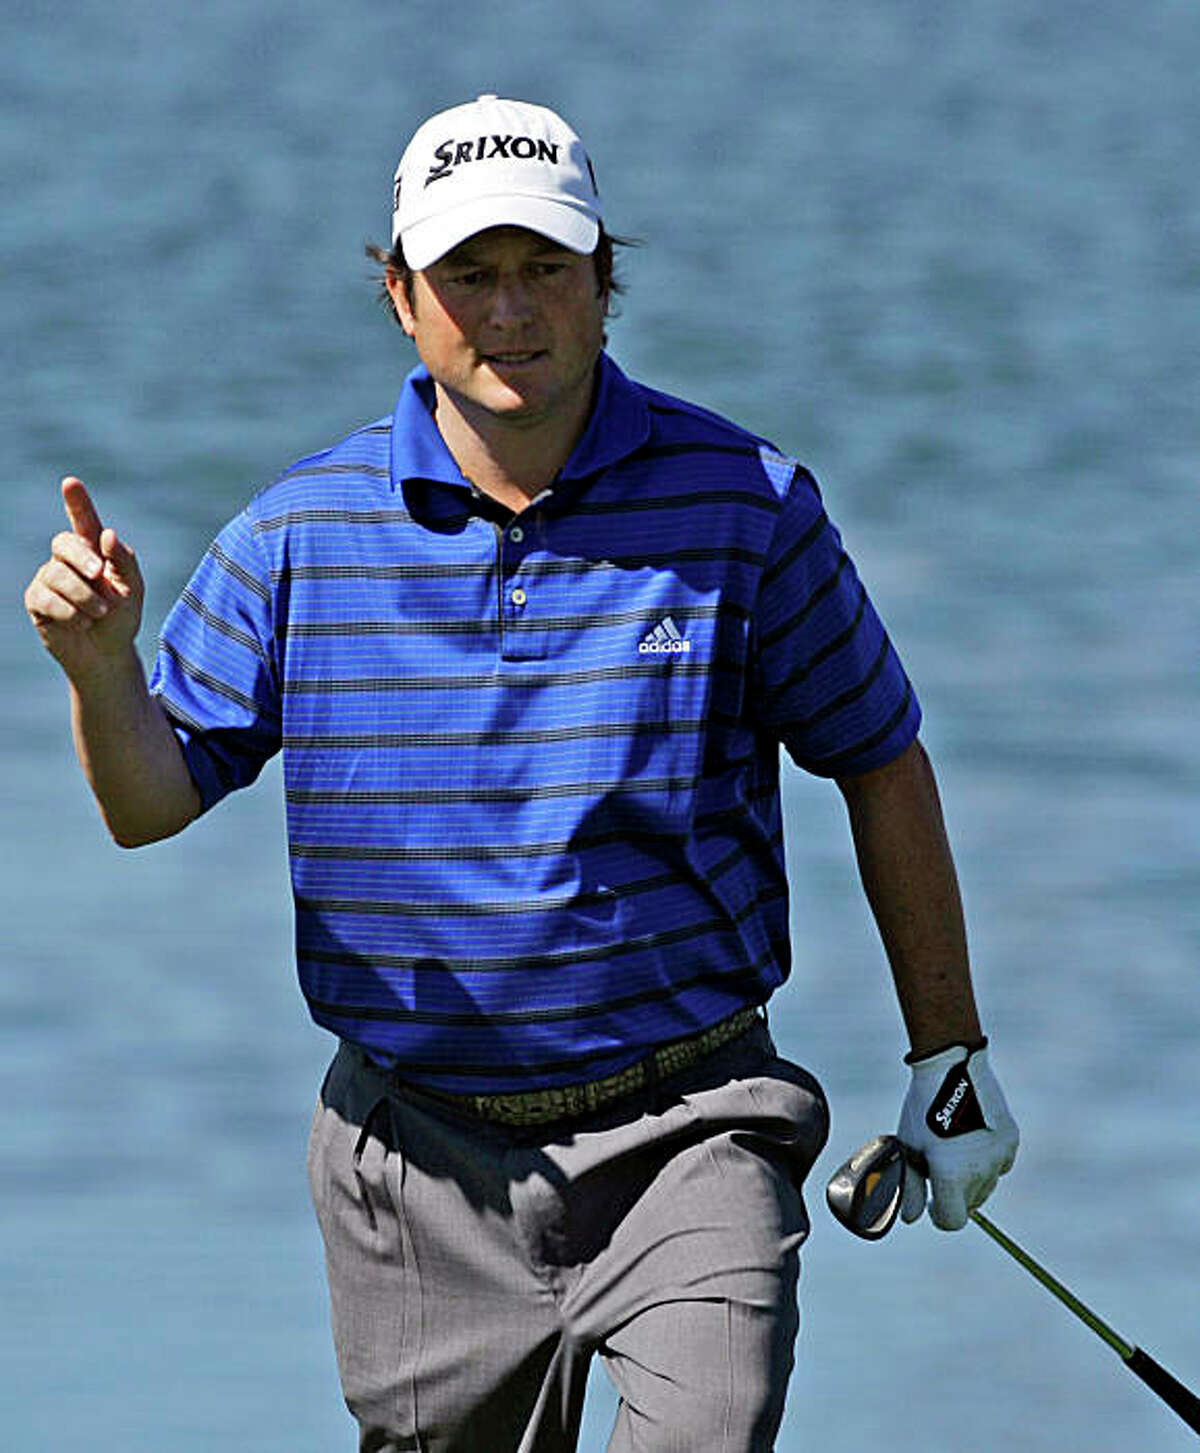 Tim Clark, of South Africa, acknowledges the applause from the gallery chipping on the third hole during his second round victory over Tiger Woods at the World Golf Championships Accenture Match Play Championship Thursday, Feb. 26, 2009, in Marana, Ariz. Clark won 4 and 2. (AP Photo/Ross D. Franklin)